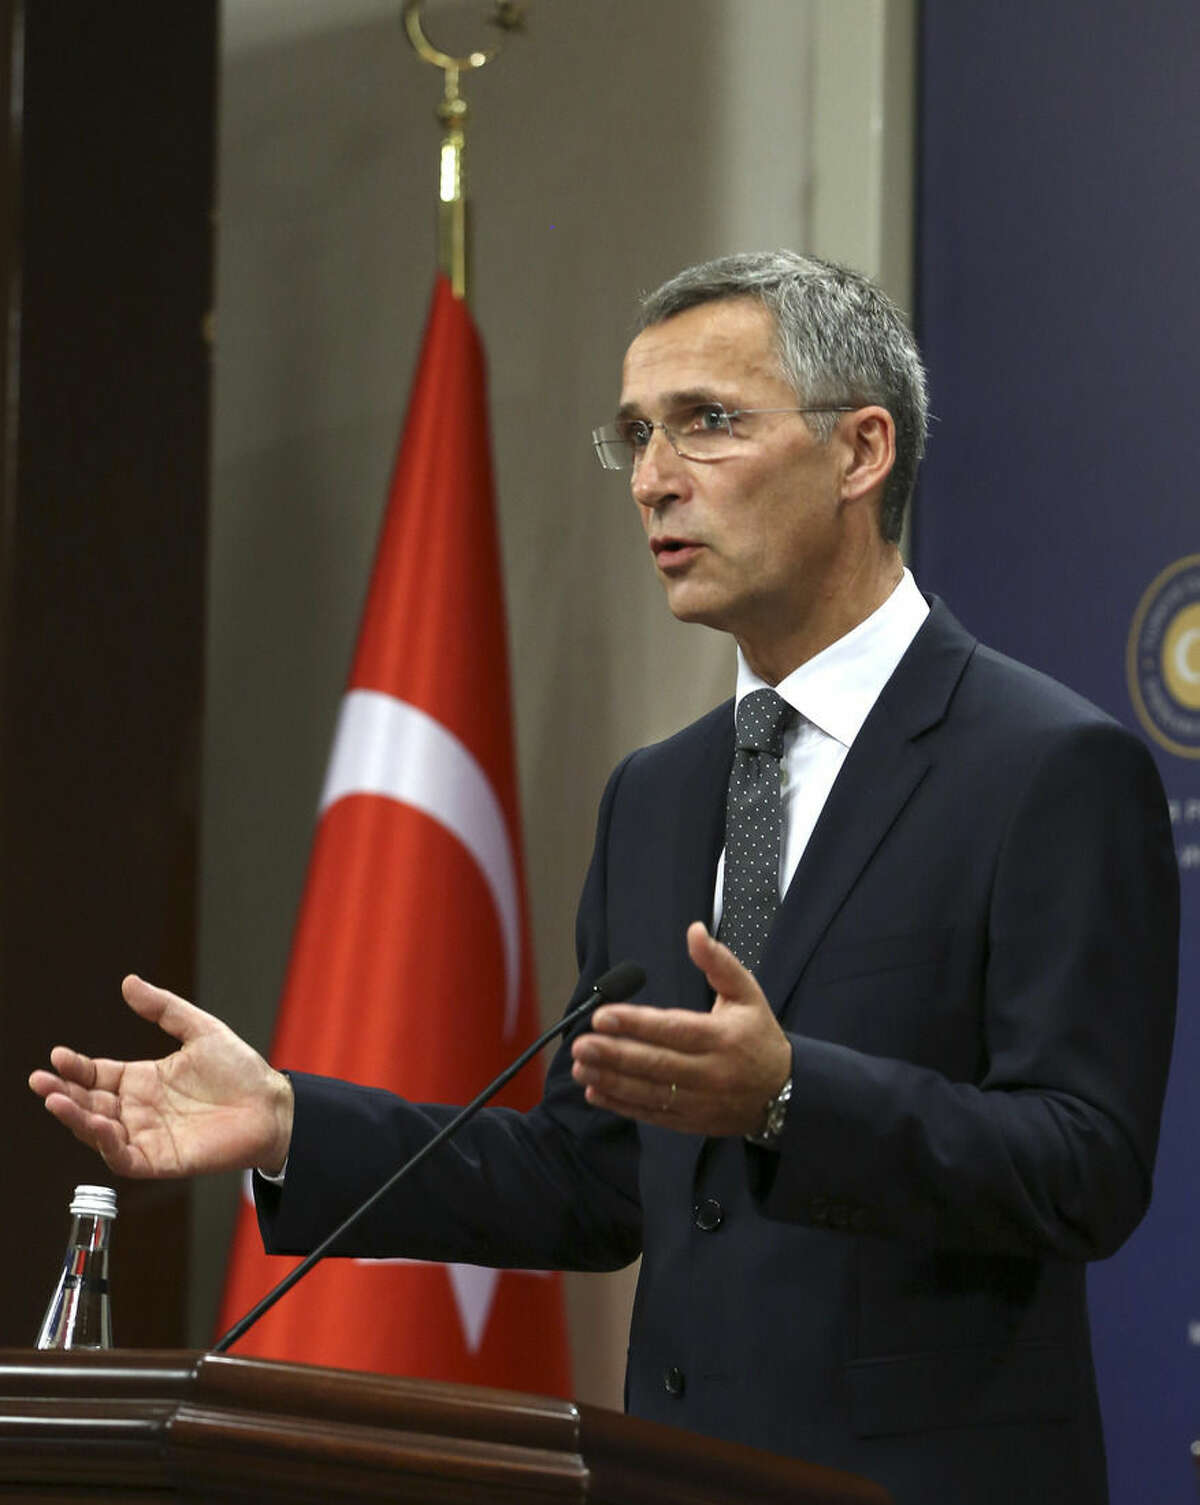 New NATO Secretary General Jens Stoltenberg speaks to the media after talks with Turkey's Foreign Minister Mevlut Cavusoglu in Ankara, Turkey, Thursday, Oct. 9, 2014. As U.S. generals and Secretary of State John Kerry warn that a strategic Syrian border town could fall to Islamic State militants, the Turkish military has deployed its tanks on its side of the frontier but only watched the slaughter. Turkey's inaction despite its supposed participation in a coalition forged to crush the extremist group is frustrating Washington and its NATO allies.(AP Photo/Burhan Ozbilici)